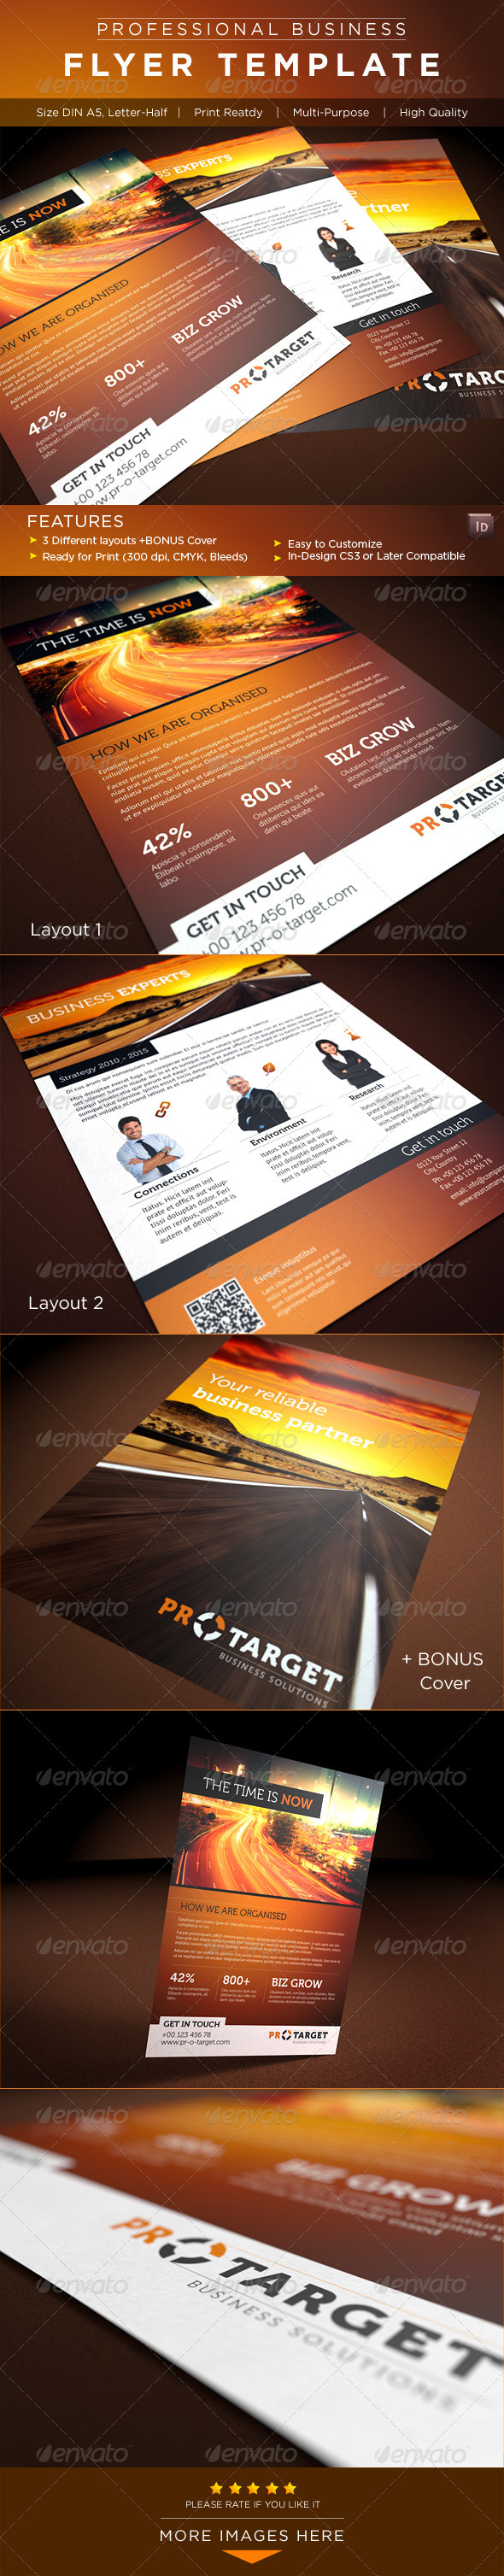 Corporate Flyer AD Template